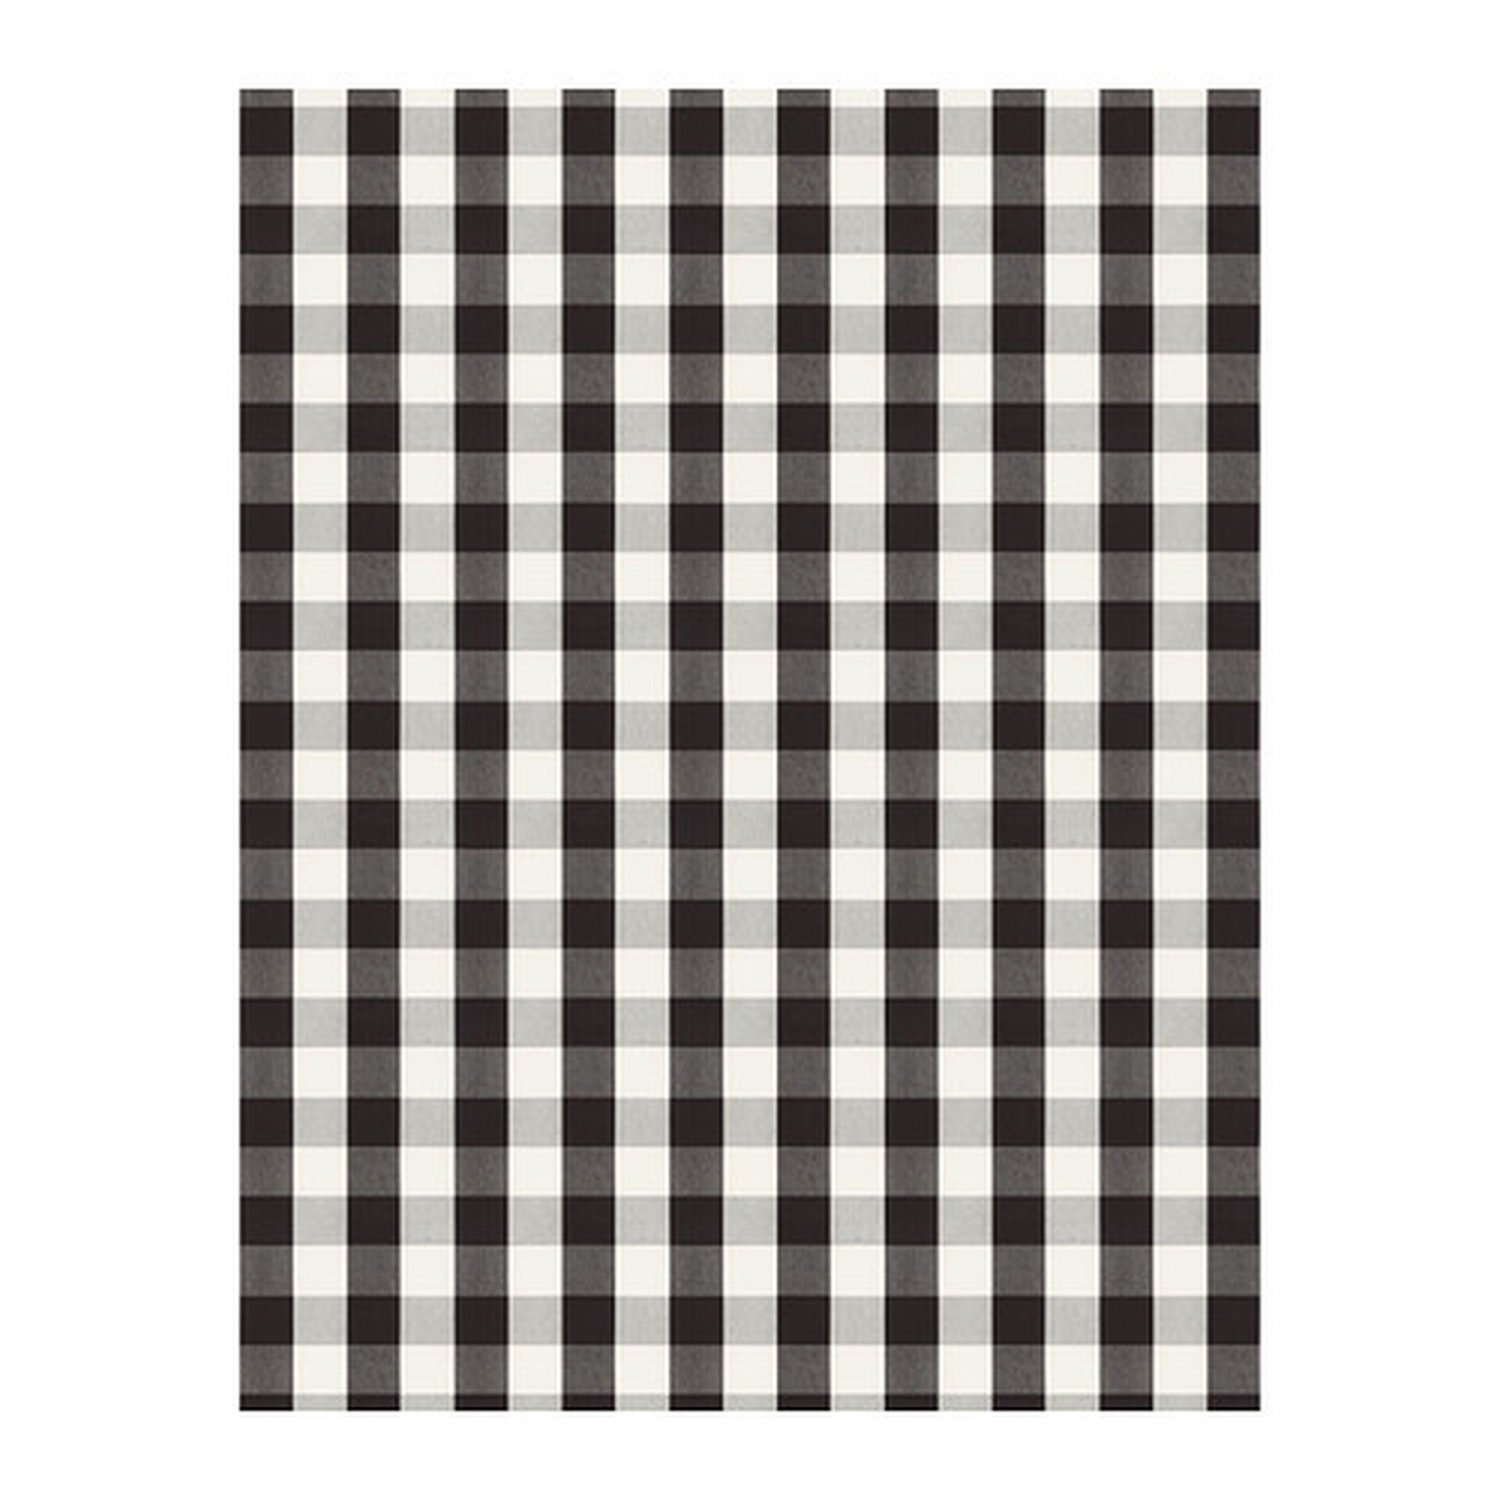 ikea berta ruta fabric material buffalo check black white 1 yd yarn dyed big grid. Black Bedroom Furniture Sets. Home Design Ideas